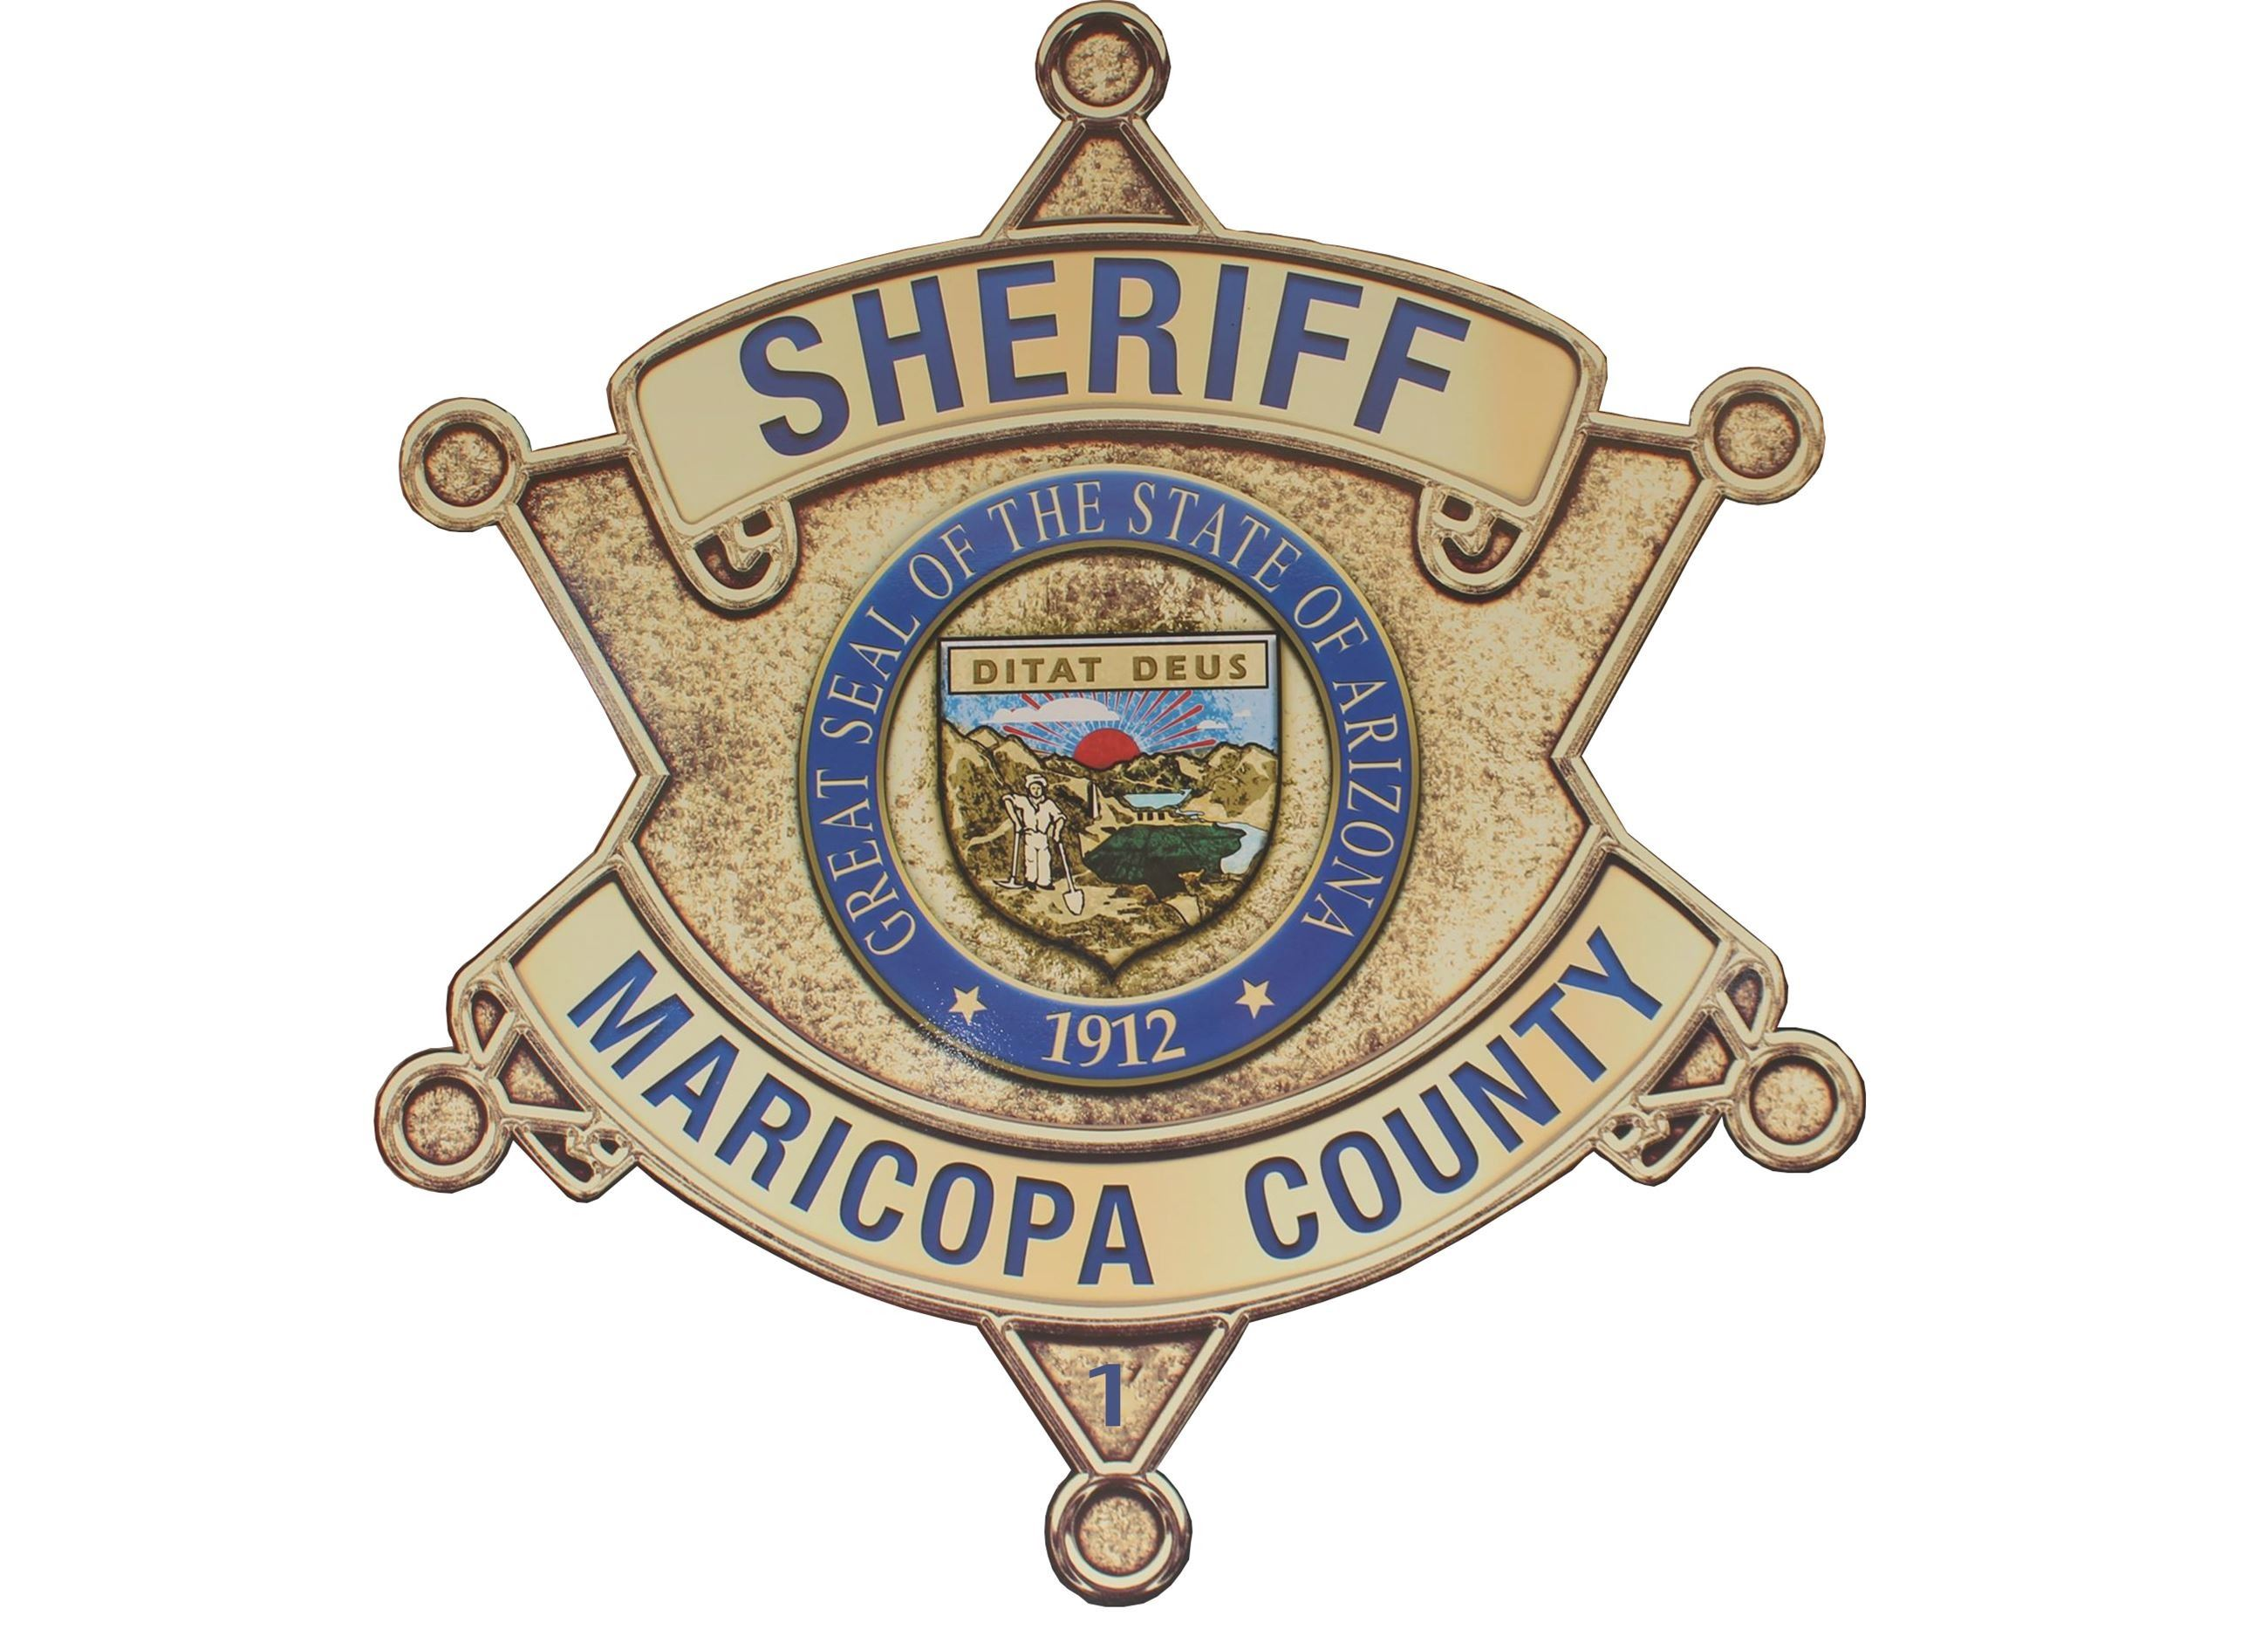 Maricopa County Badge